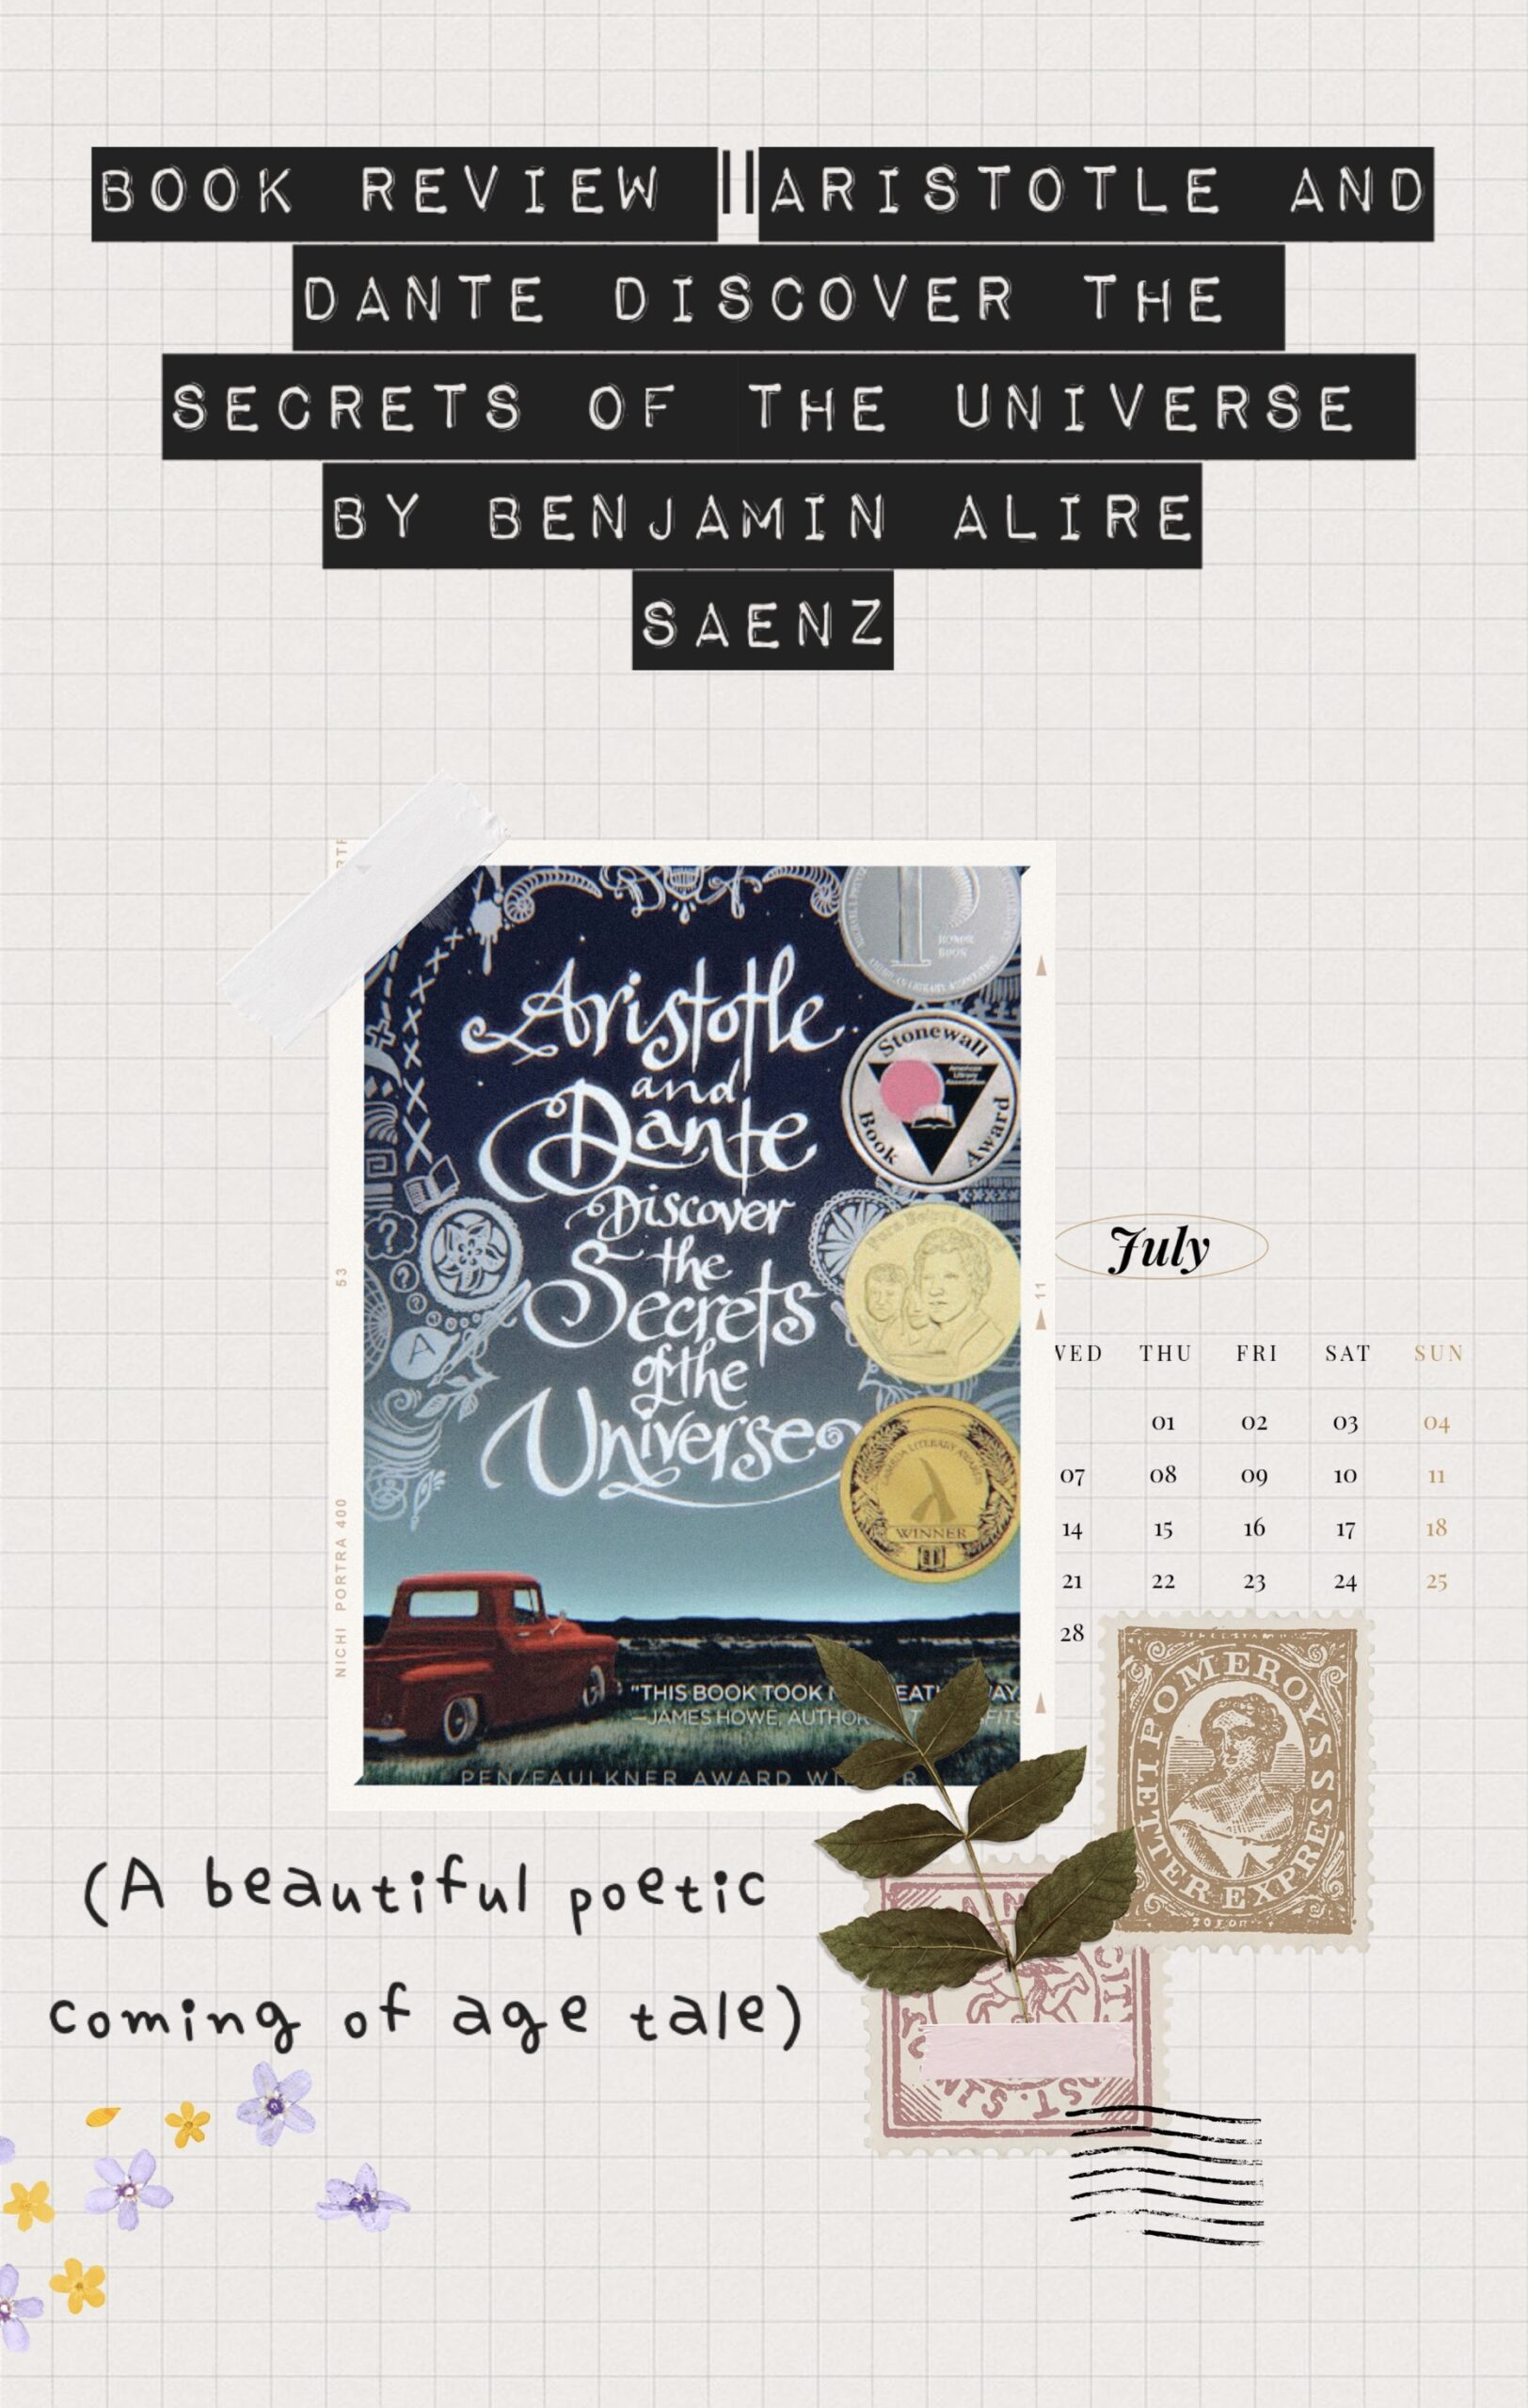 Book Review Aristotle and Dante discover the secrets of the universe by Benjamin Alire Saenz